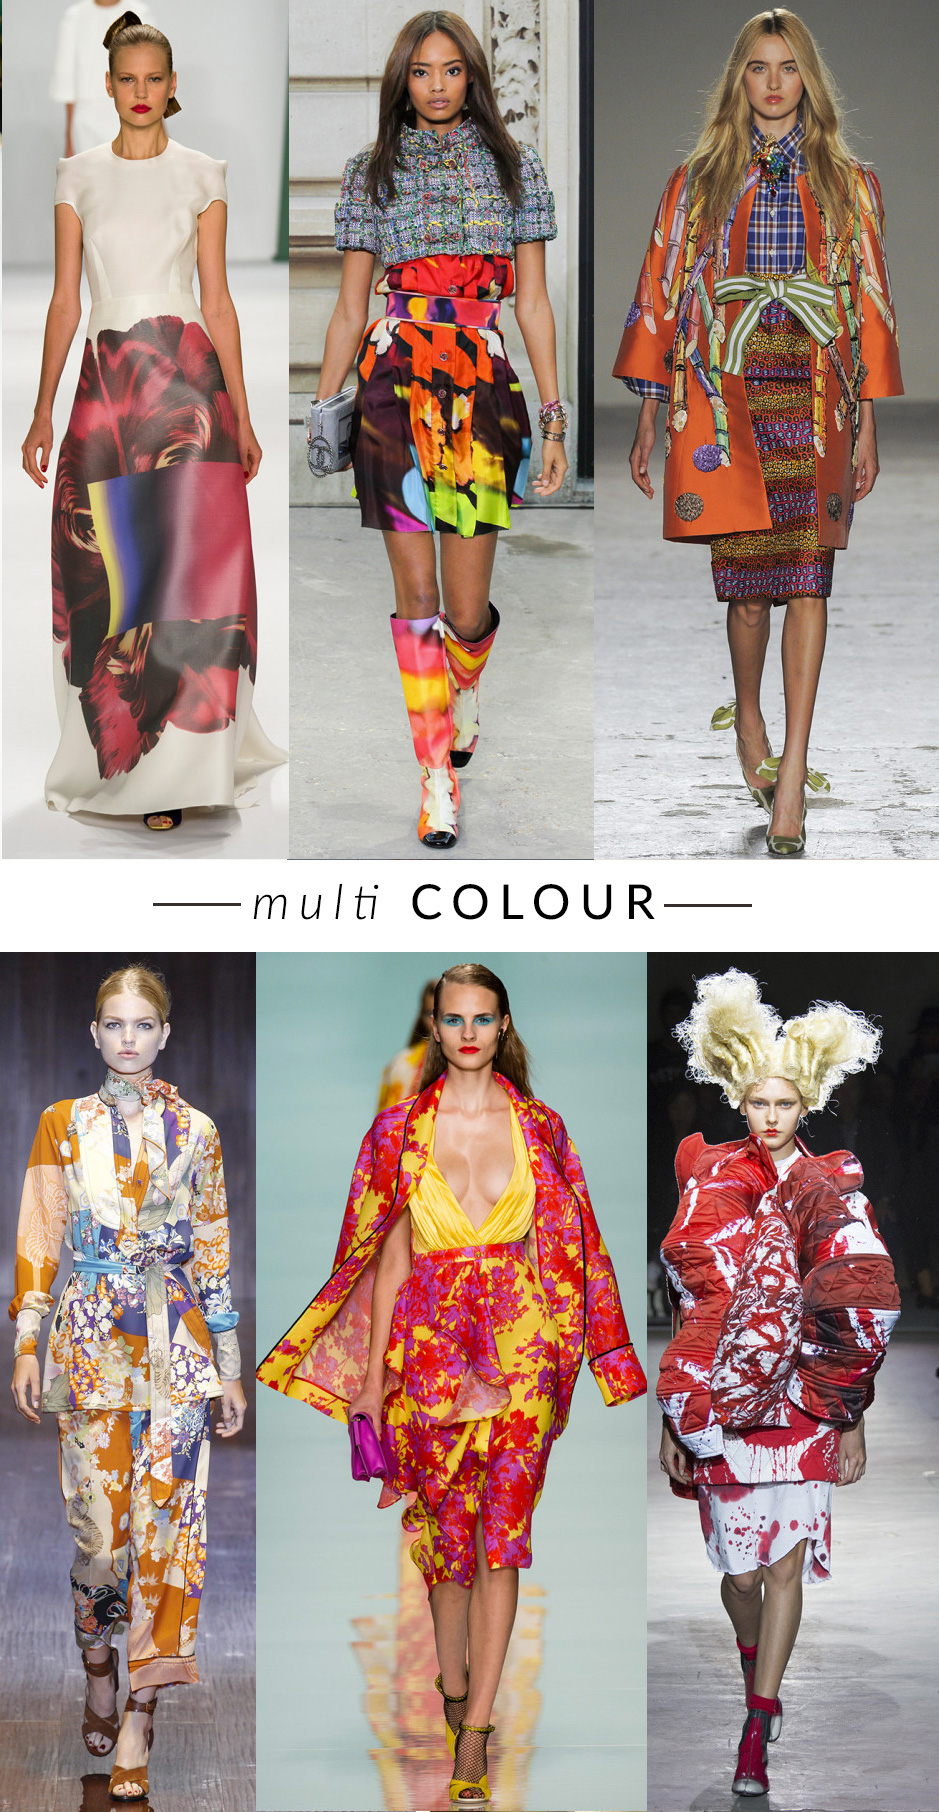 MULTICOLOR-STAMPEcolour-blocking trend moda primavera estate 2015 fashion blogger elena schiavon